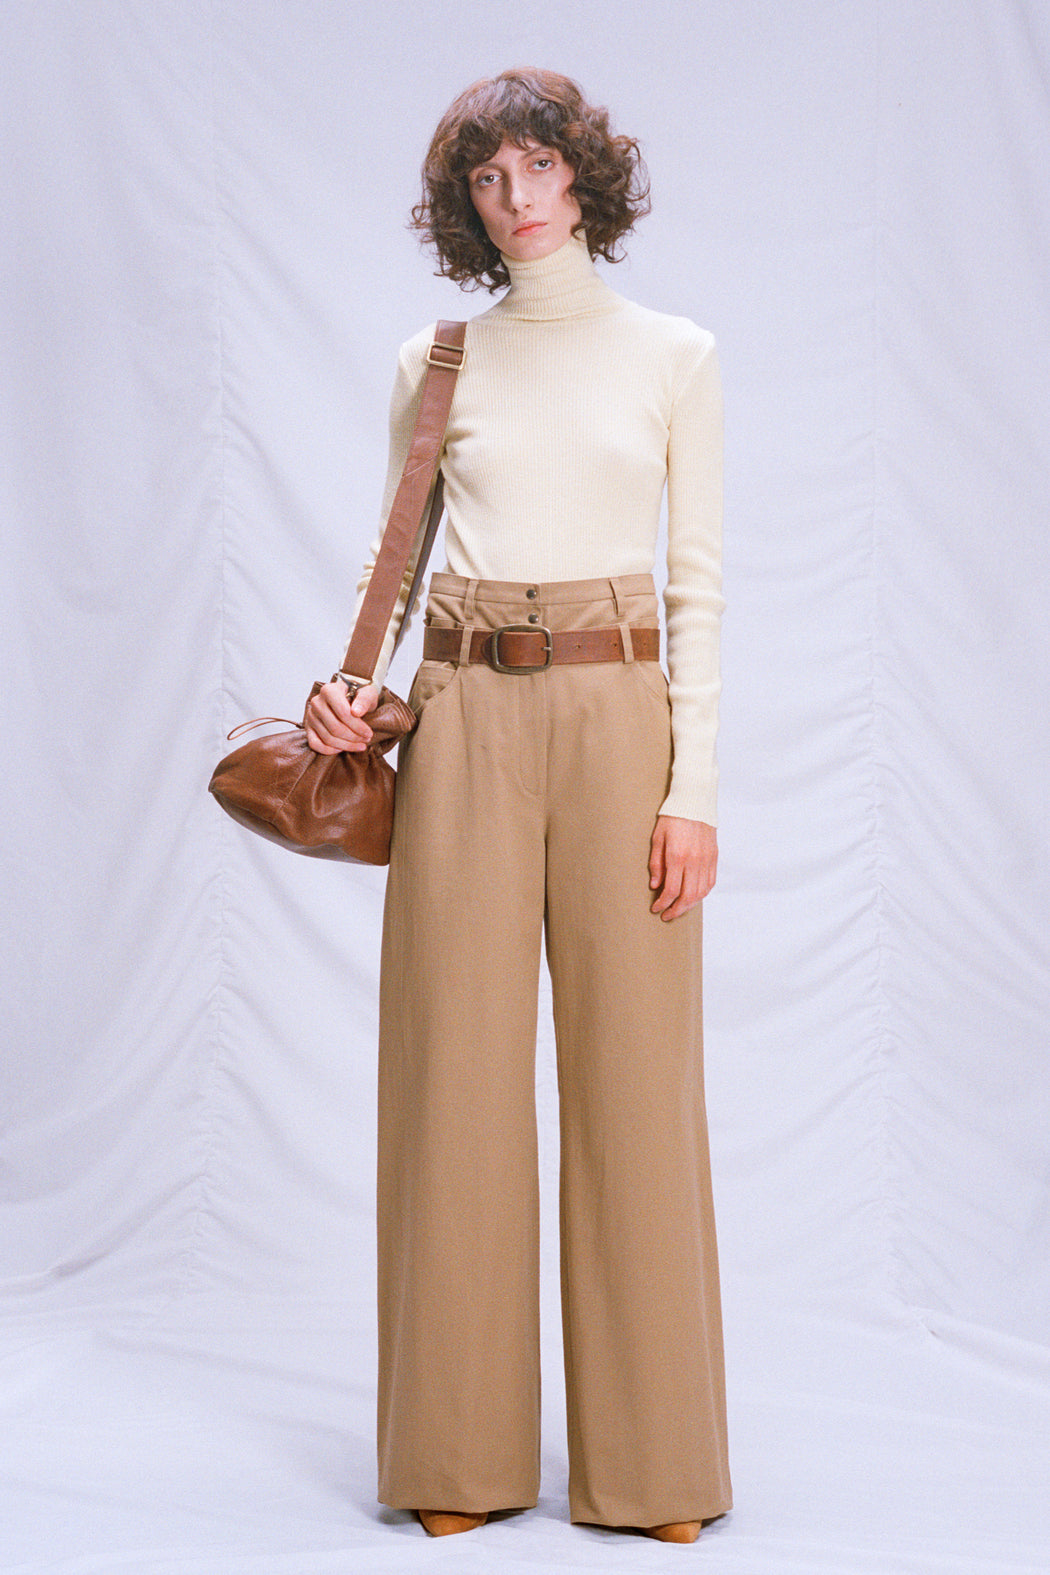 Cotton pants with a double belt